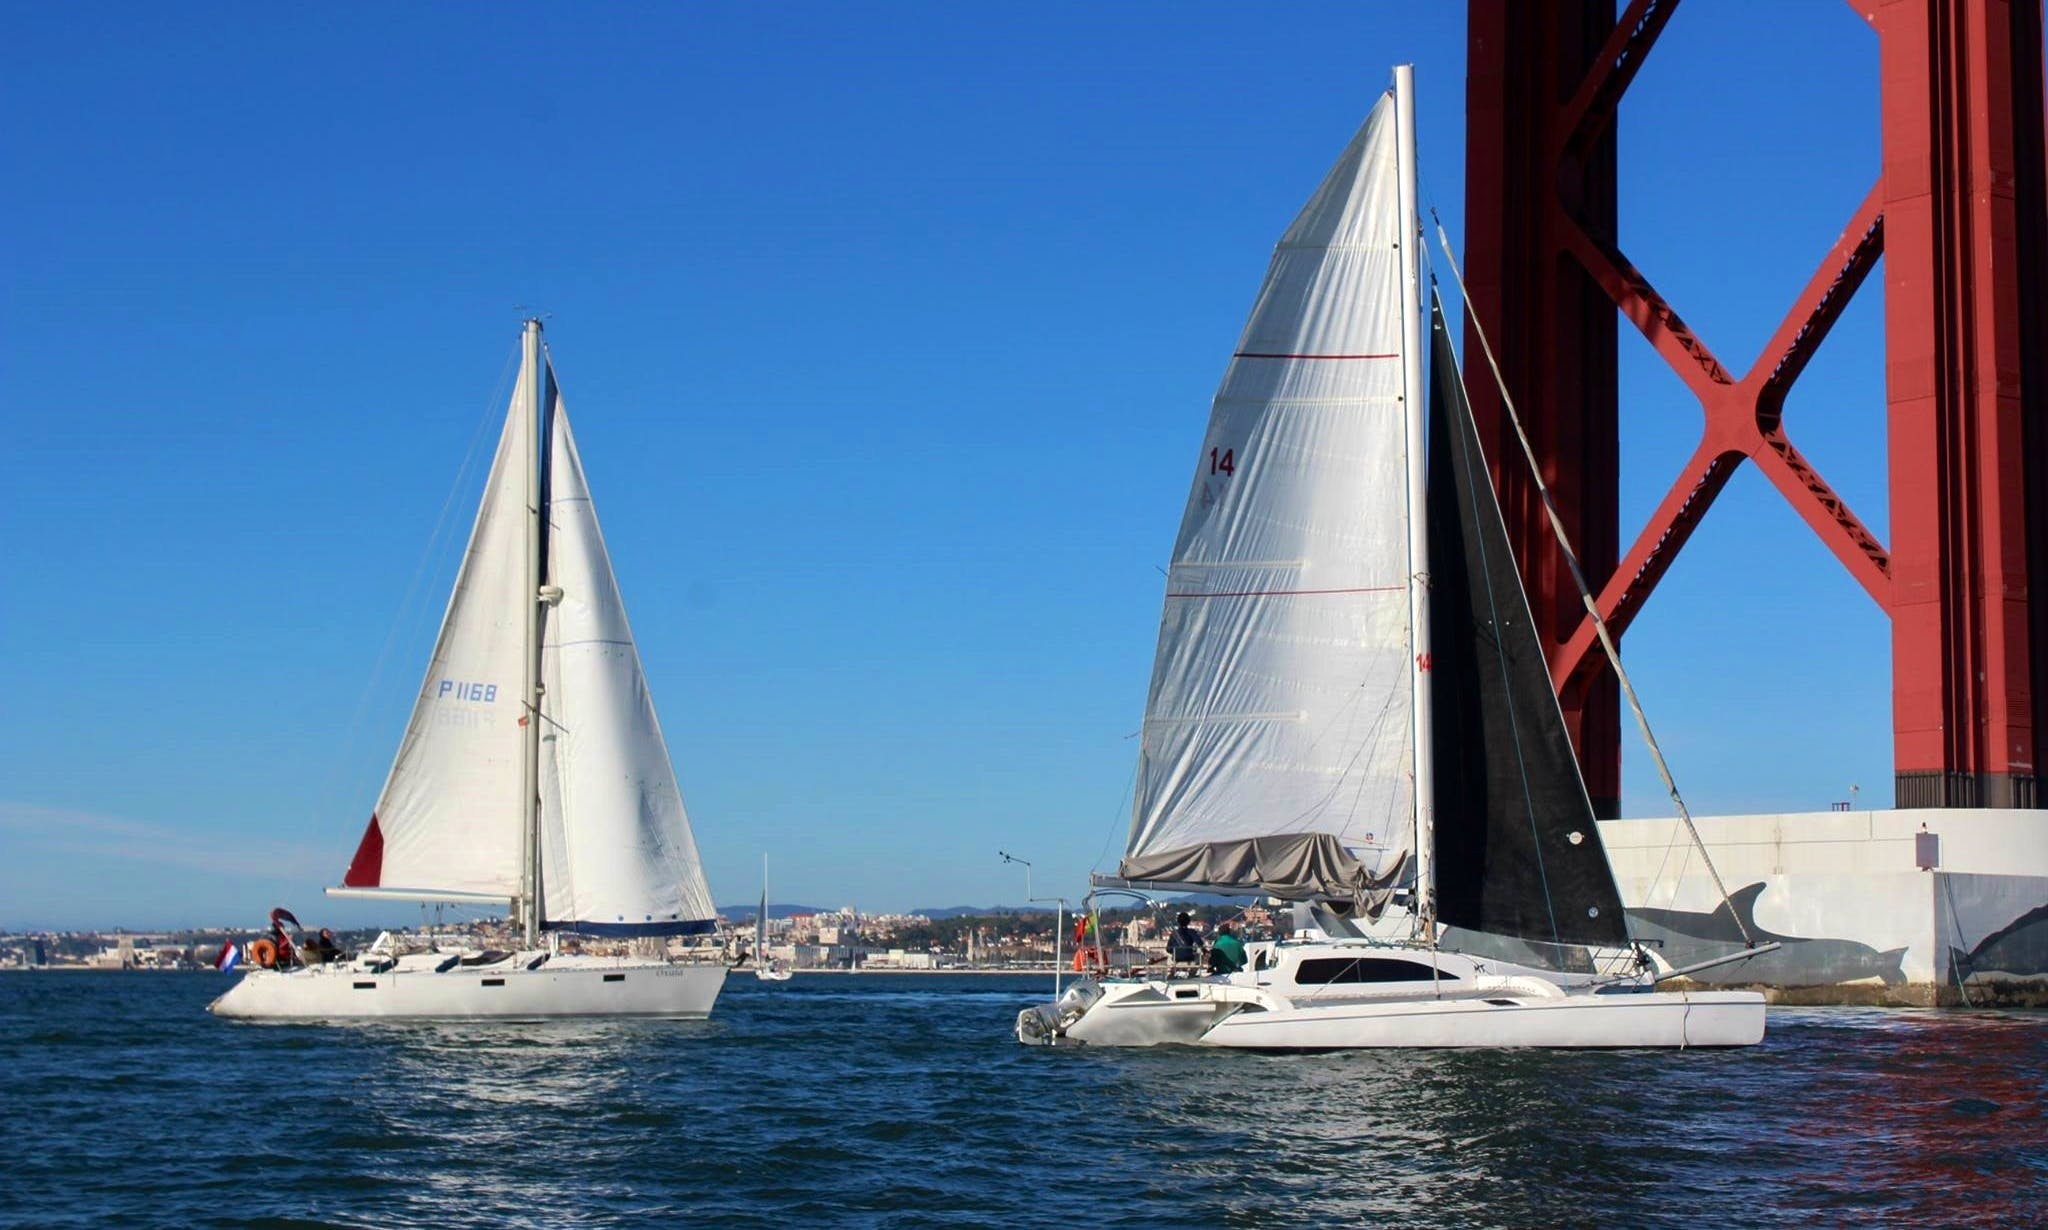 City Tour on Fast and Quite Corsair Marine 36 Catamaran in Lisbon